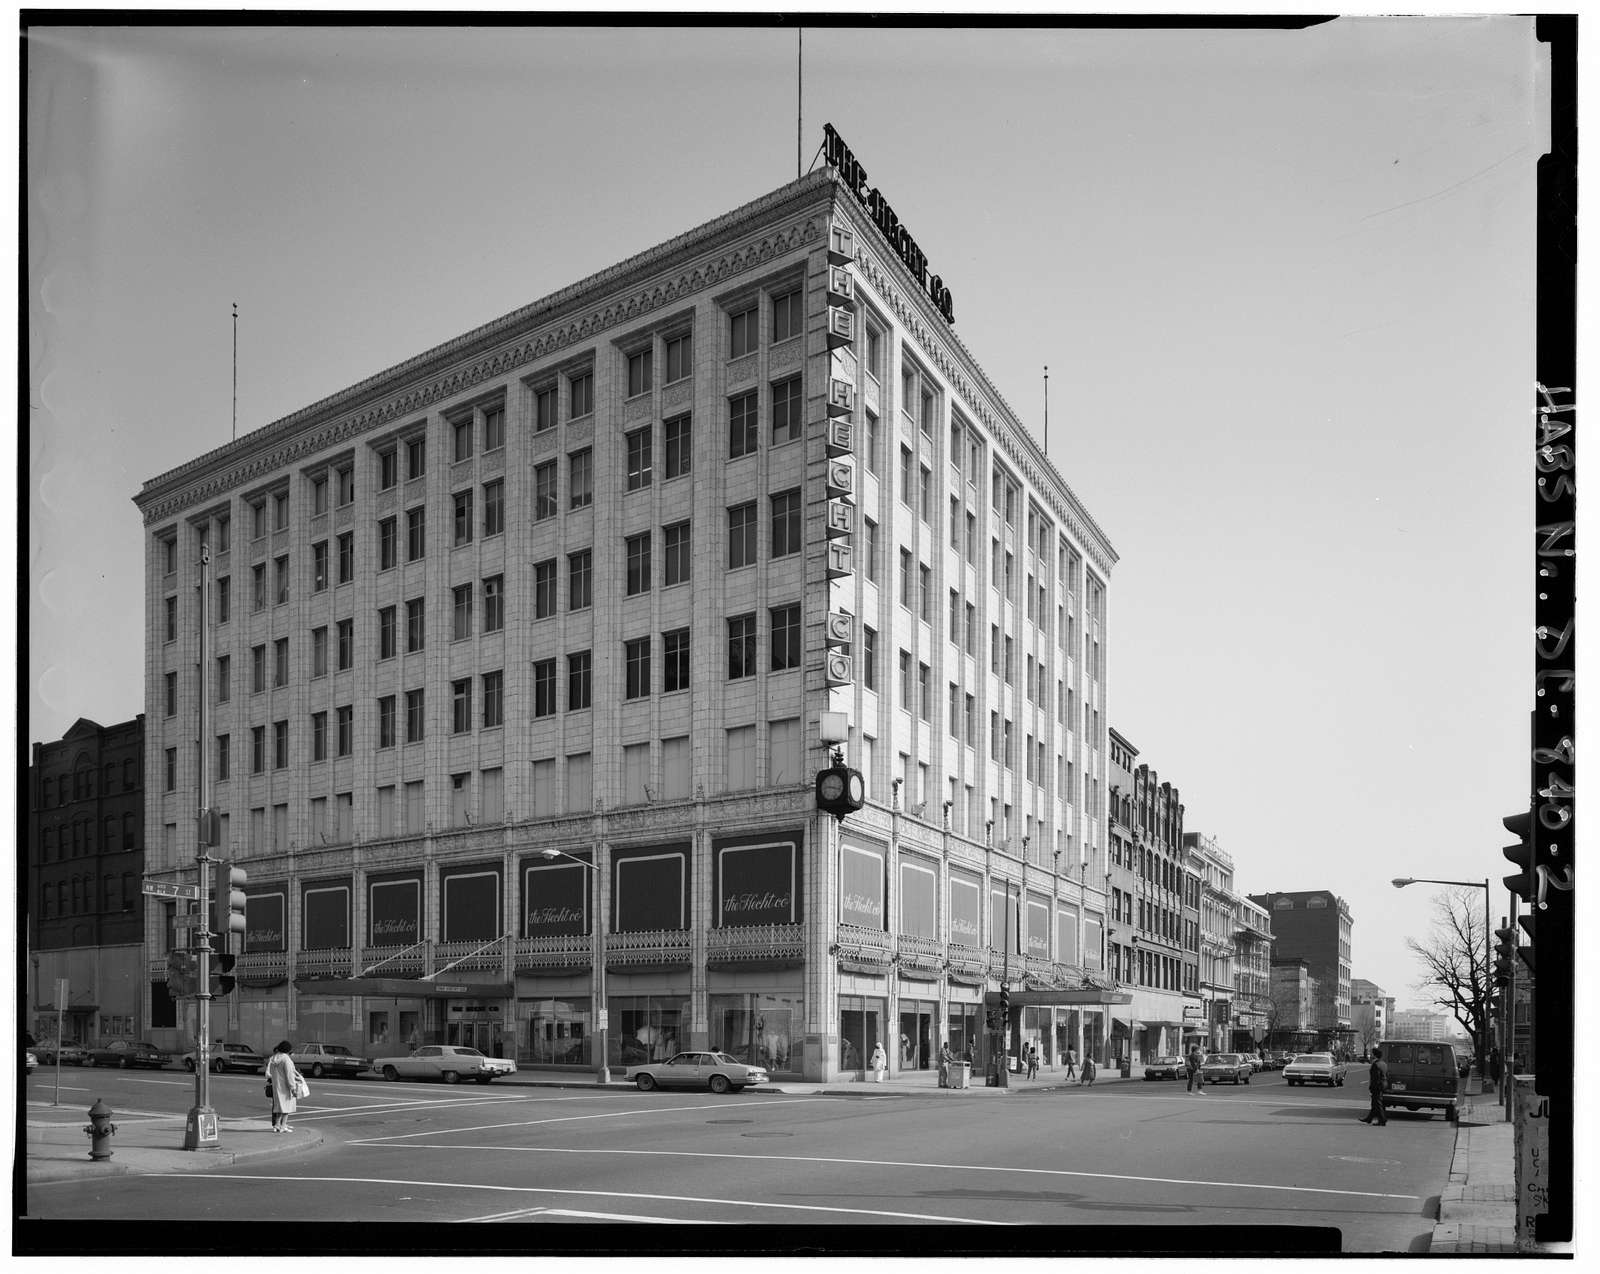 Hecht Company Building (Commercial), Seventh & F Streets, Northwest, Washington, District of Columbia, DC